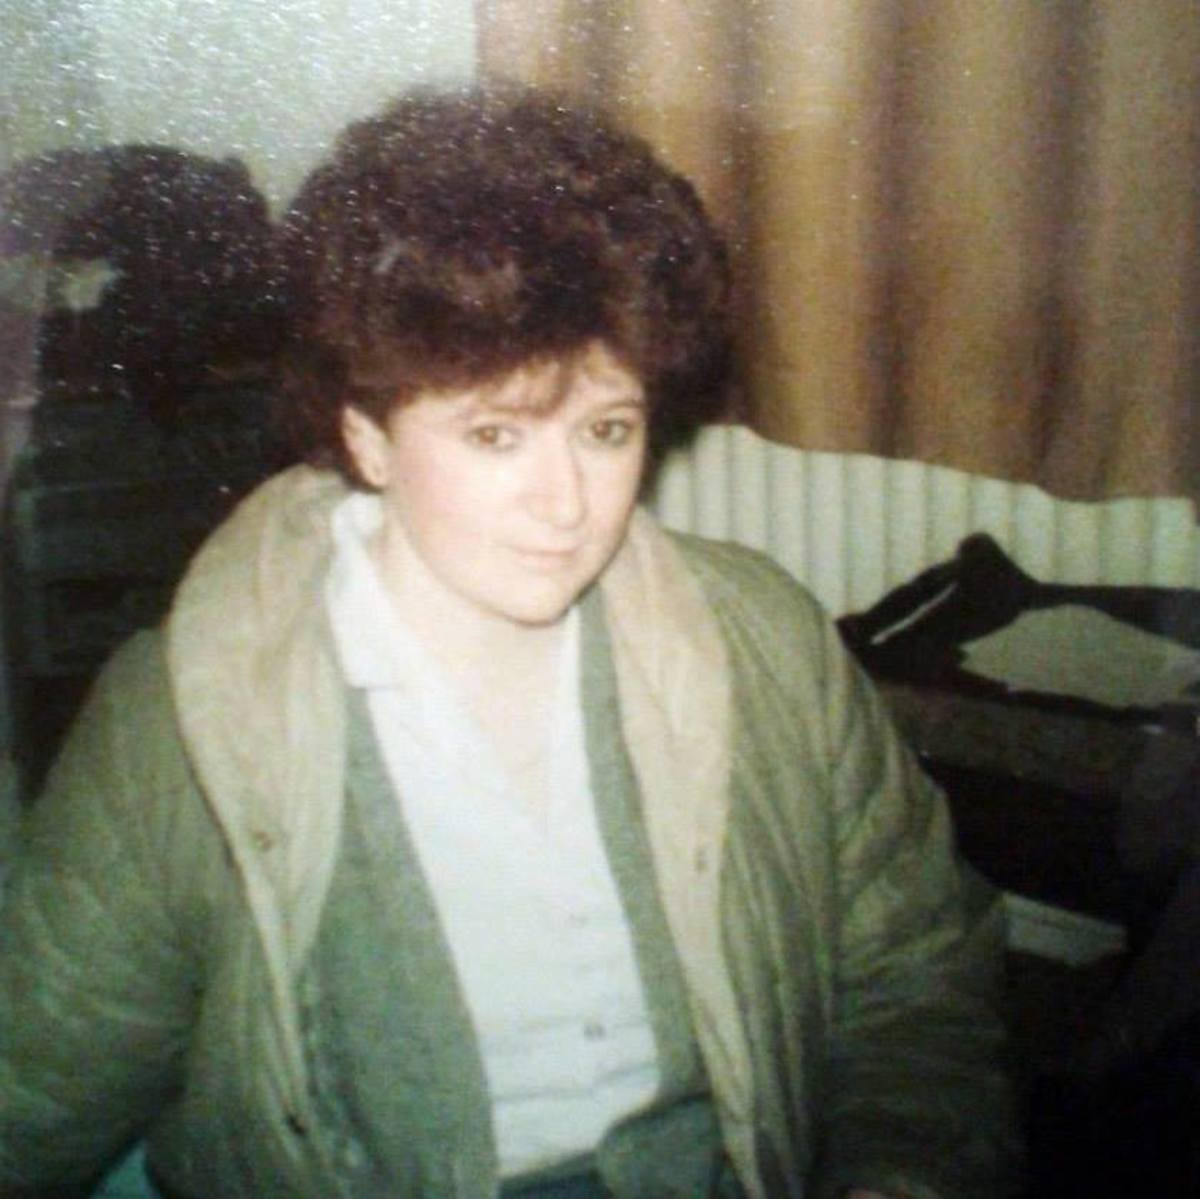 My friend Michelle Handy, pictured at my house (early '80s). She had masses of curly auburn hair. She hasn't actually changed much to this day. We caught up again on Facebook.